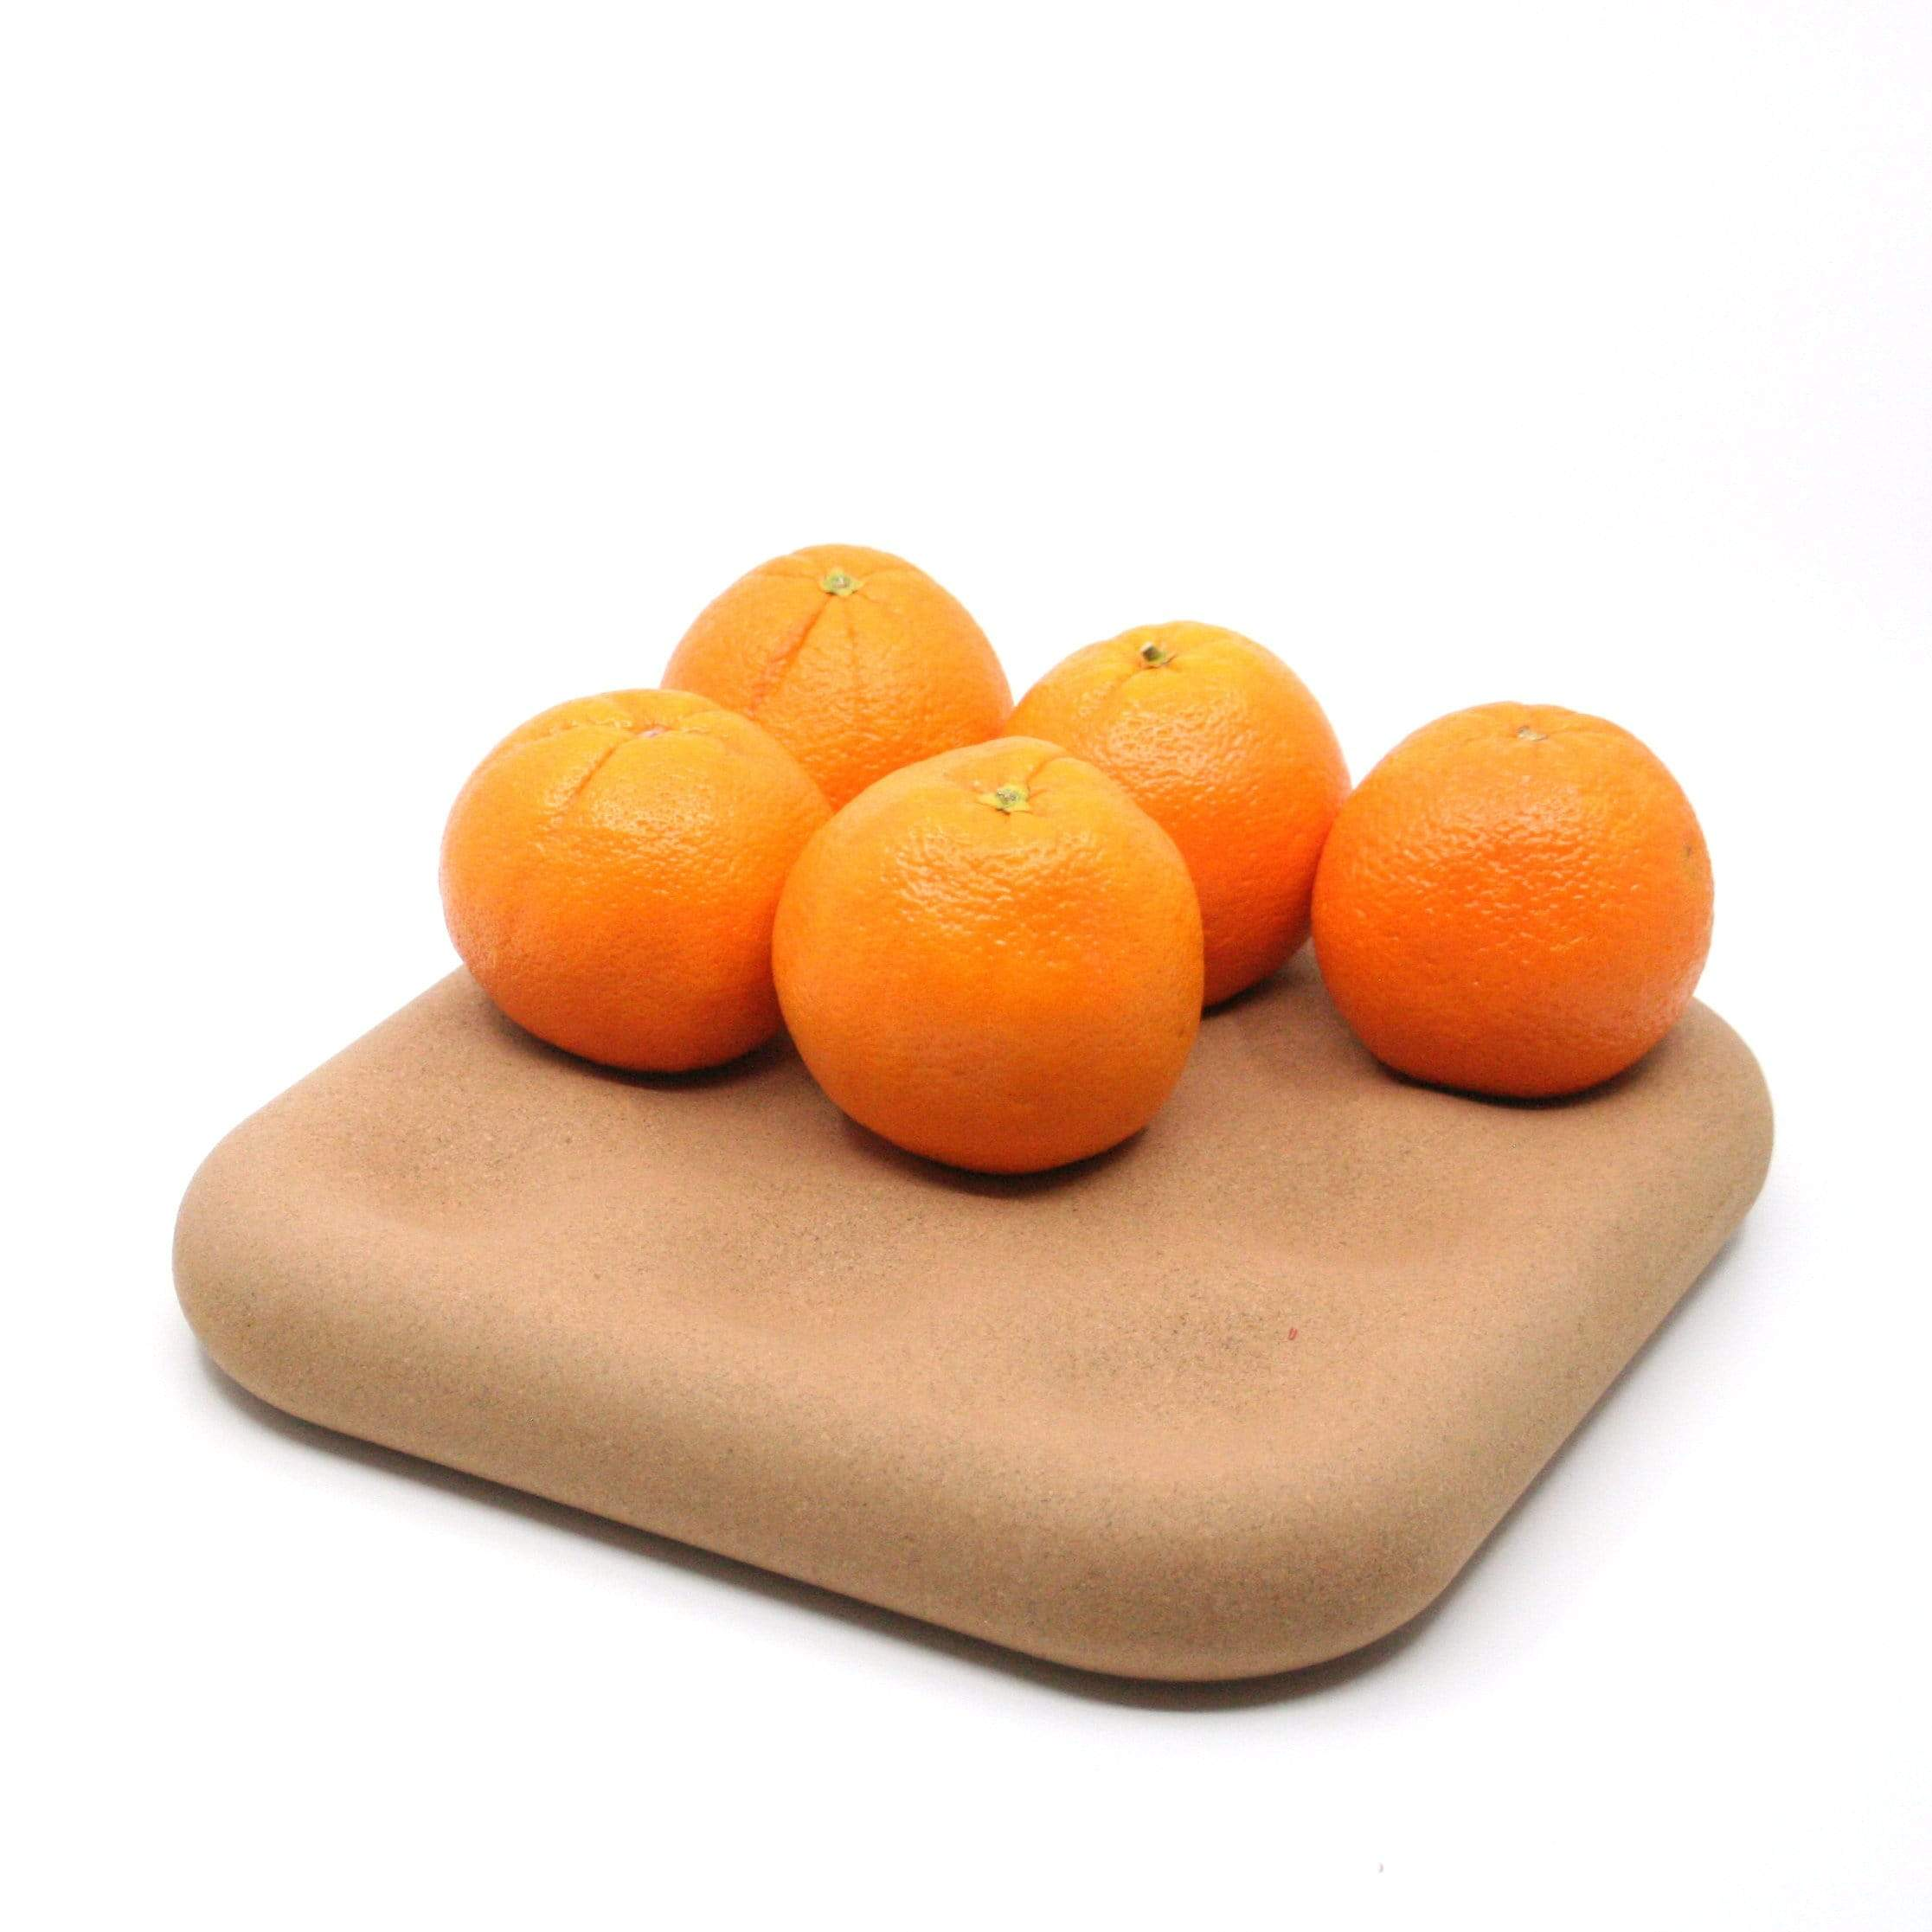 Dimple Tray Fruit Bowl